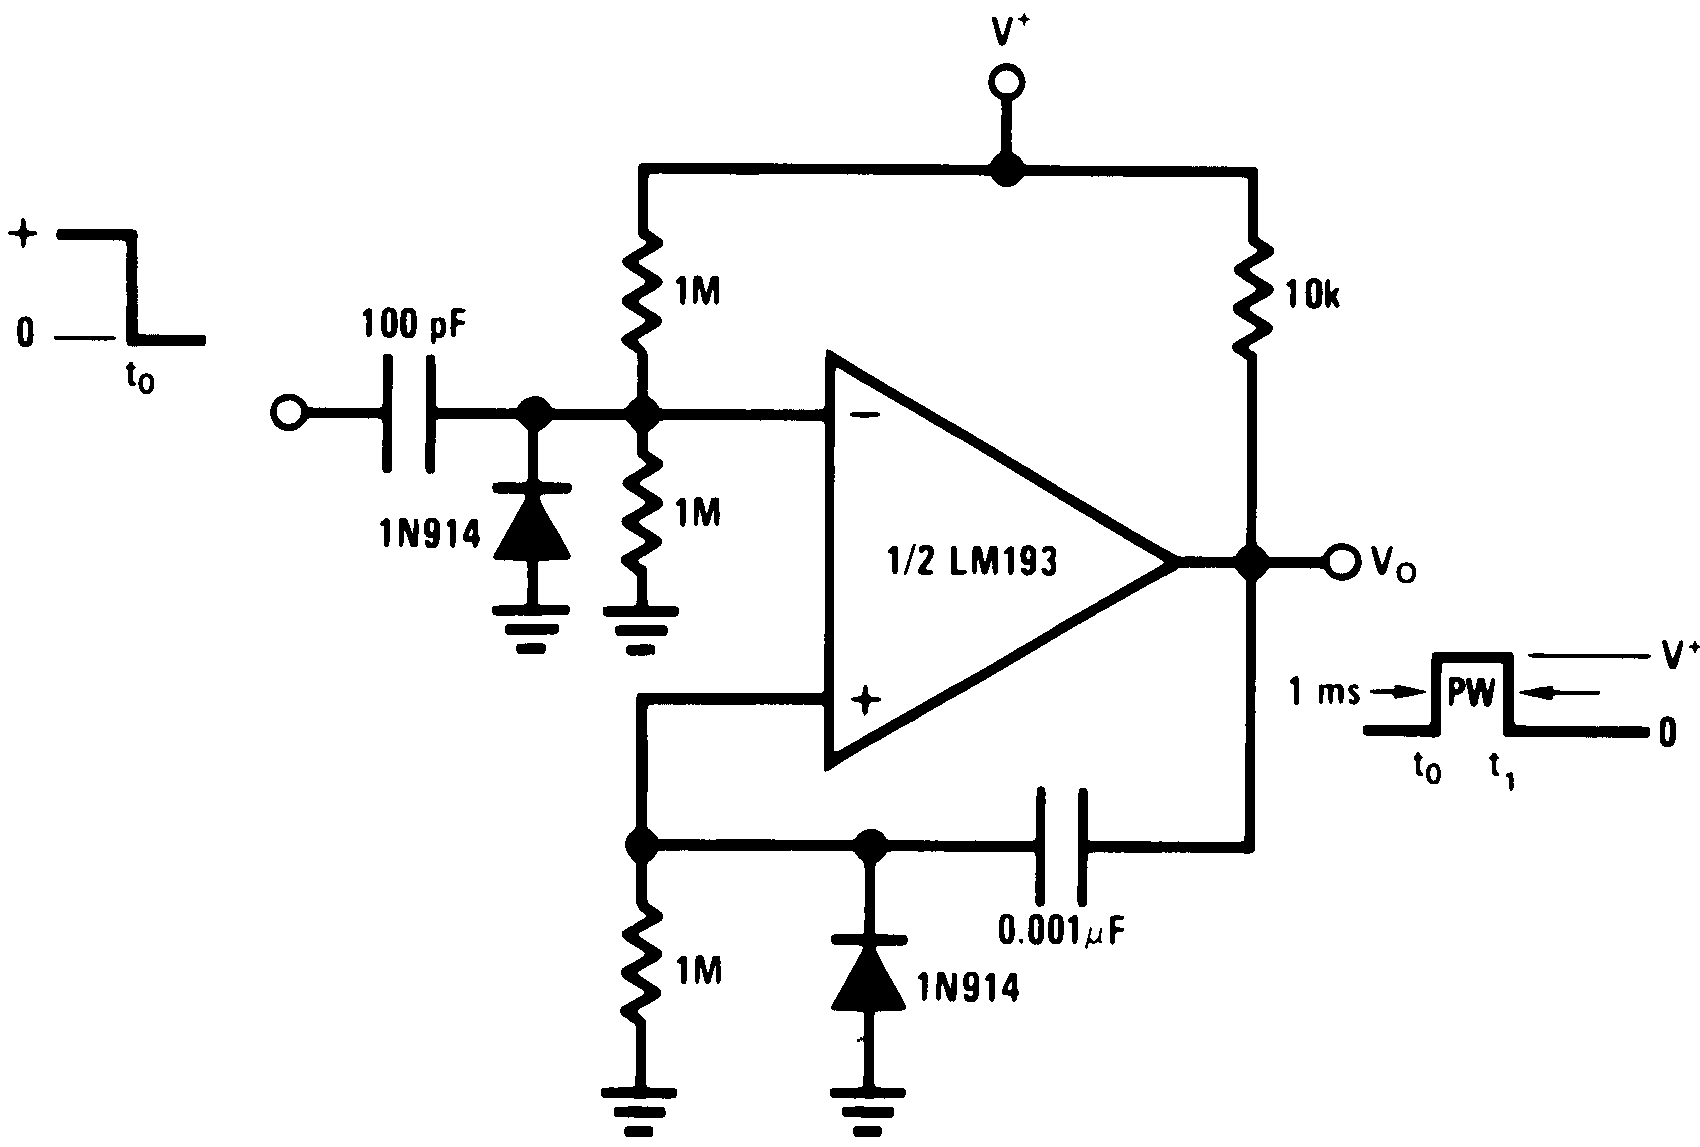 Lm393 N Often Called A One Shot Multivibrator Is Pulse Generating Circuit Lm193 Lm2903 Lm293 00570922 Figure 32